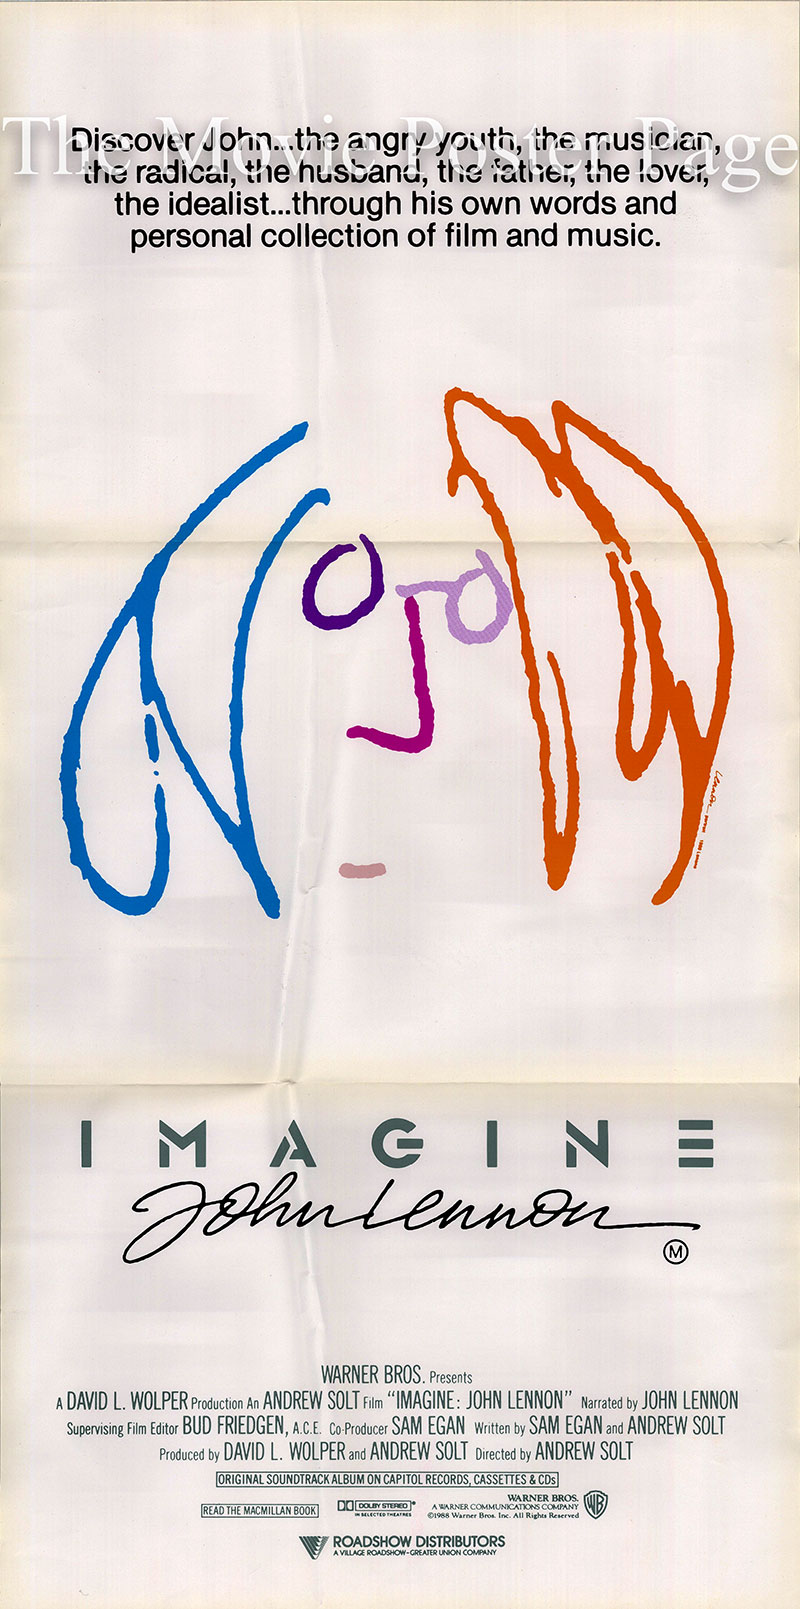 Pictured is an Australian daybill poster for the 1988 Andrew Solt film Imagine starring John Lennon.